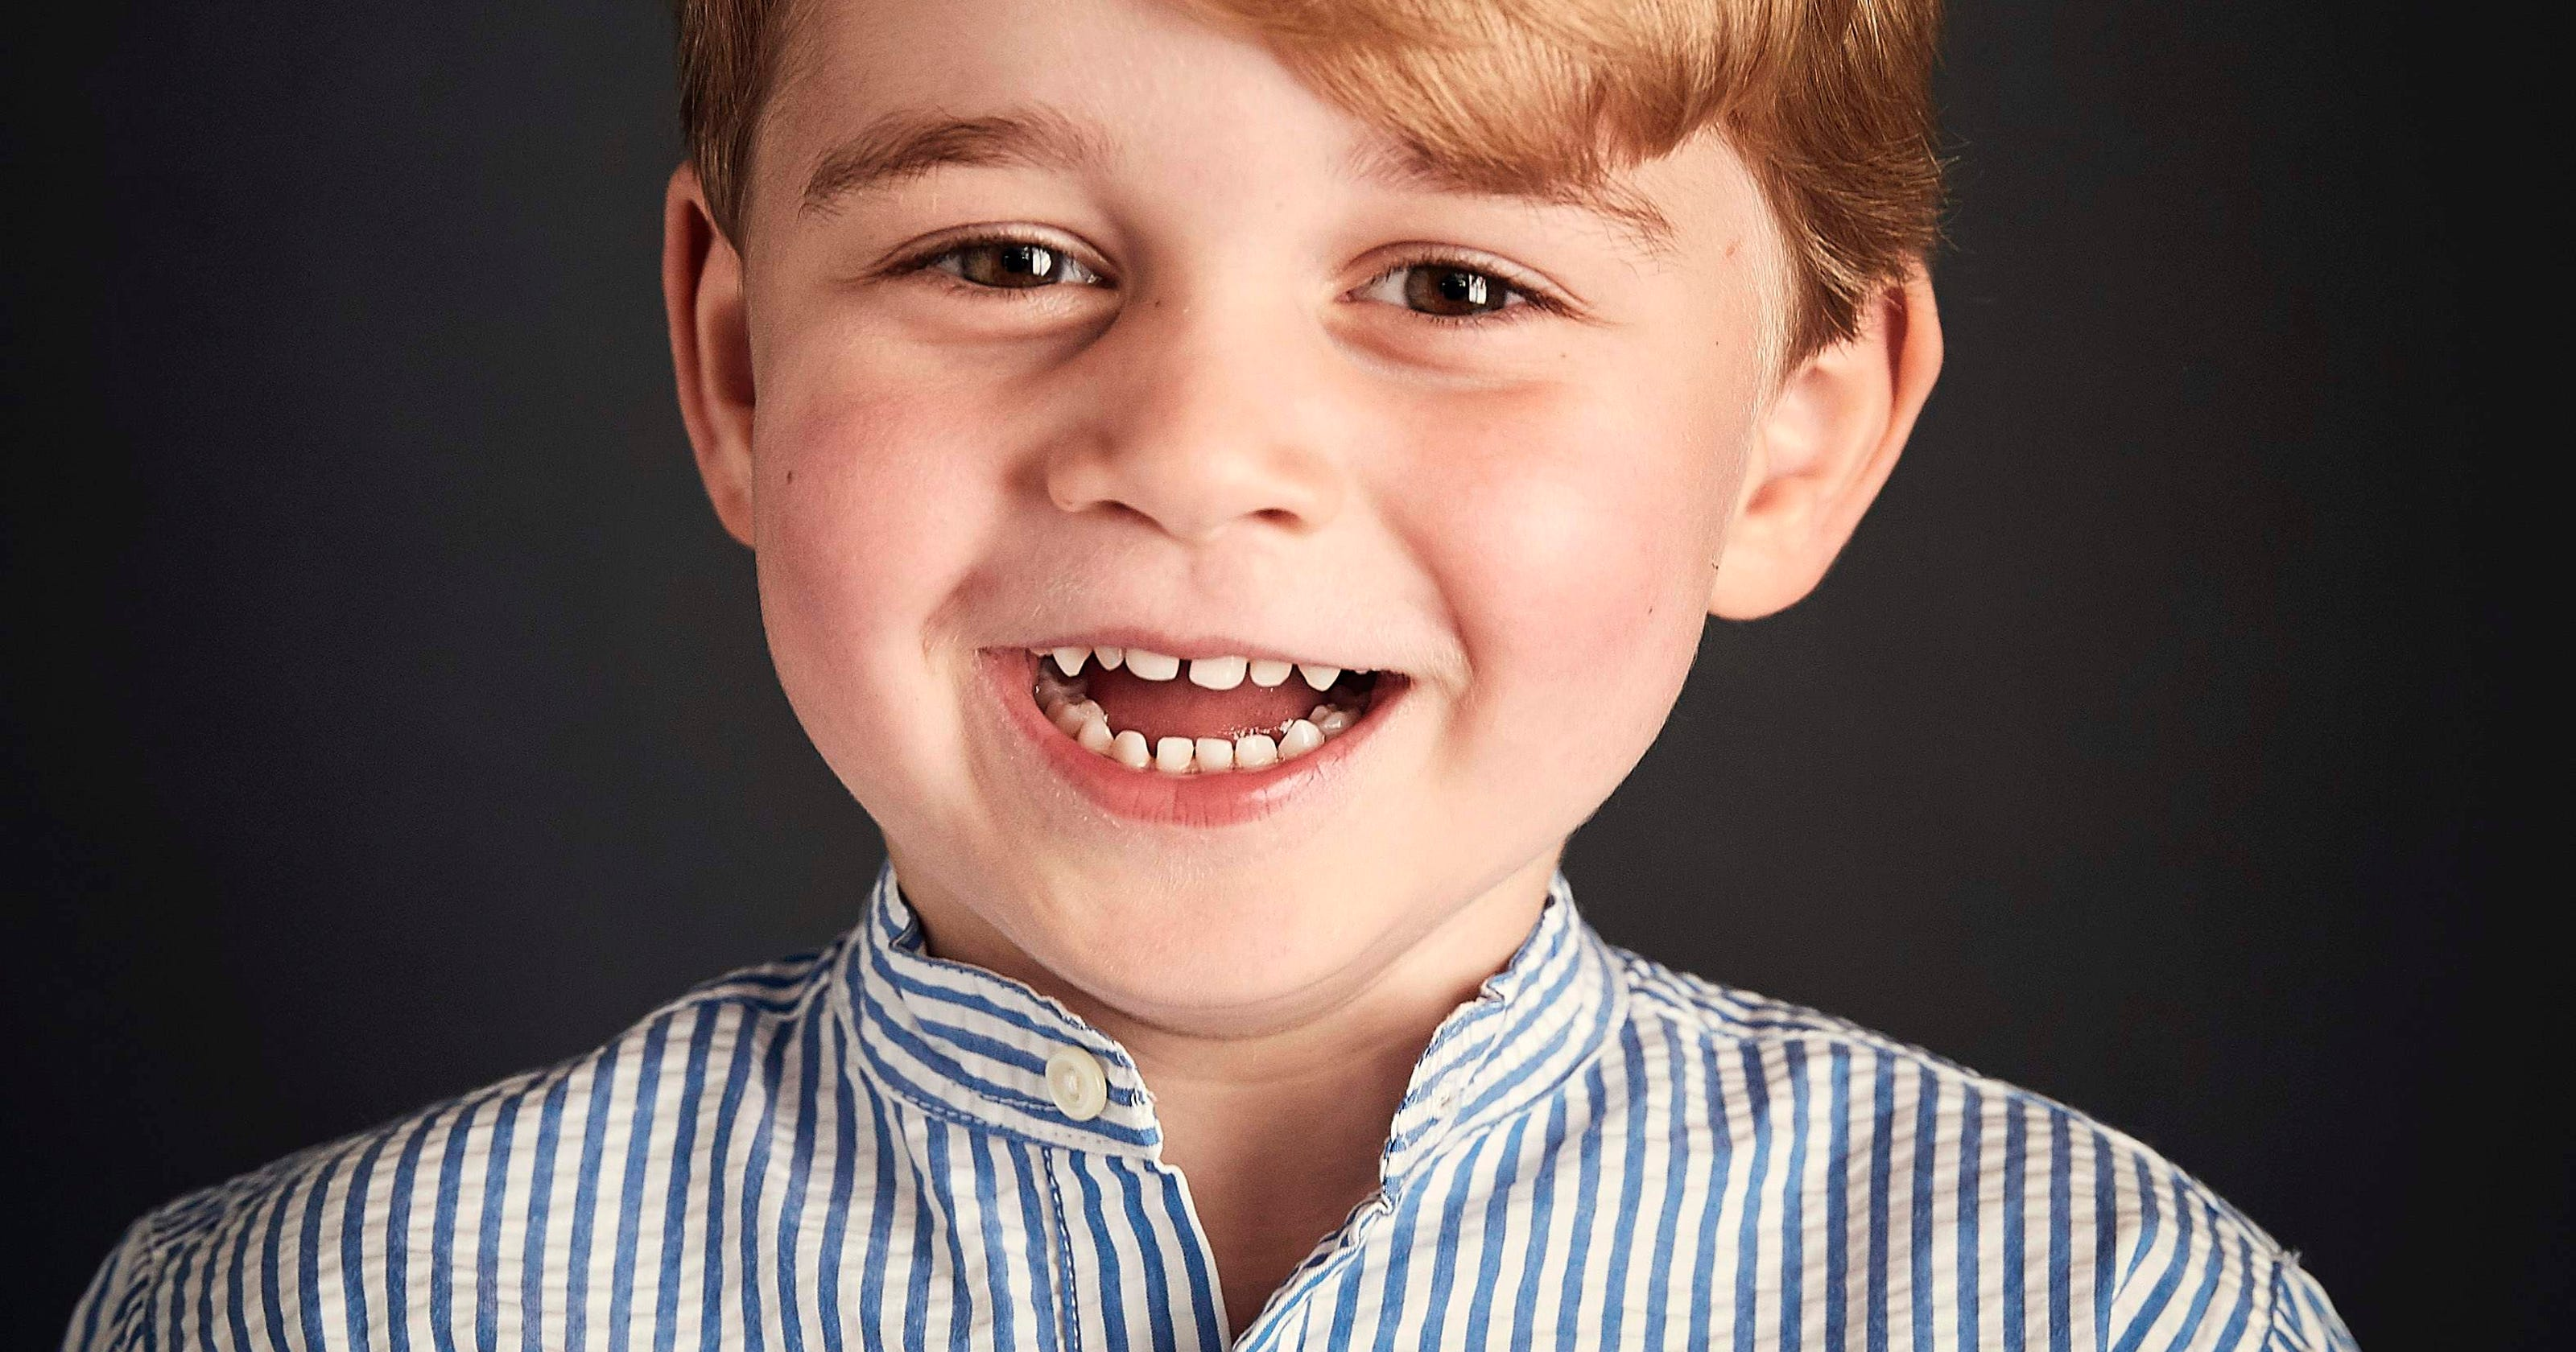 Prince George Celebrates Fourth Birthday With A New Official Portrait